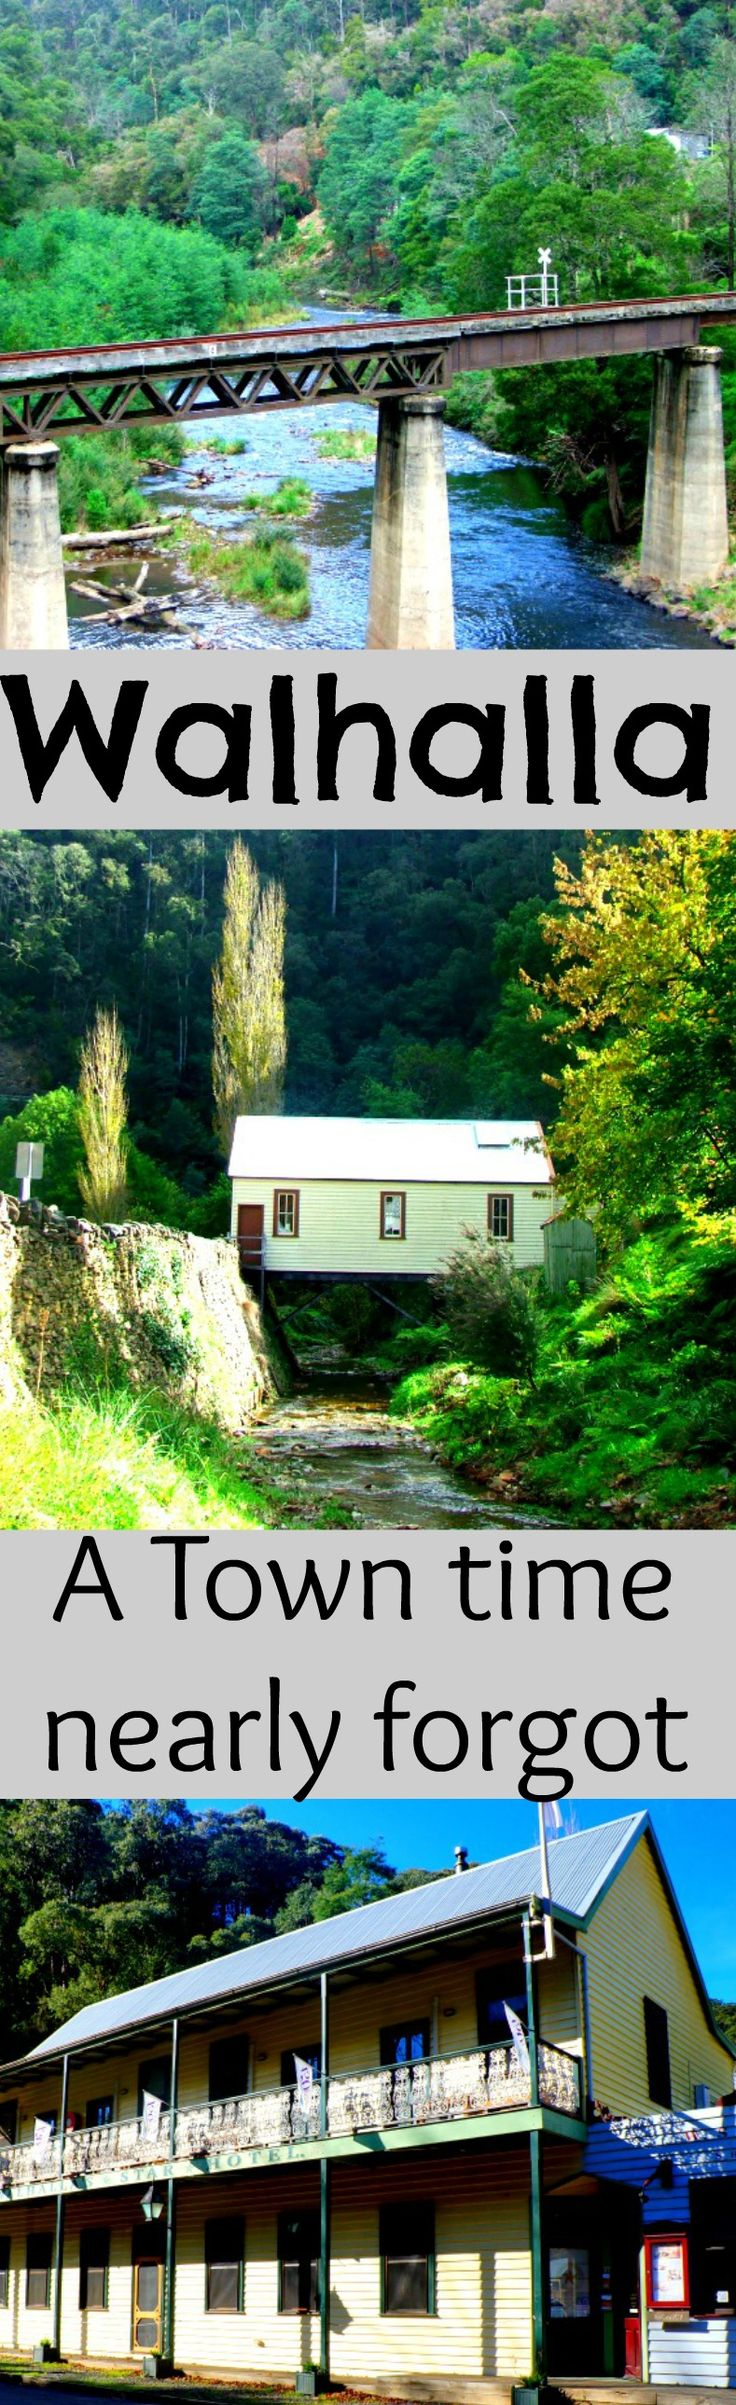 Australia. http://wyldfamilytravel.com/walhalla-the-town-time-nearly-forgot/